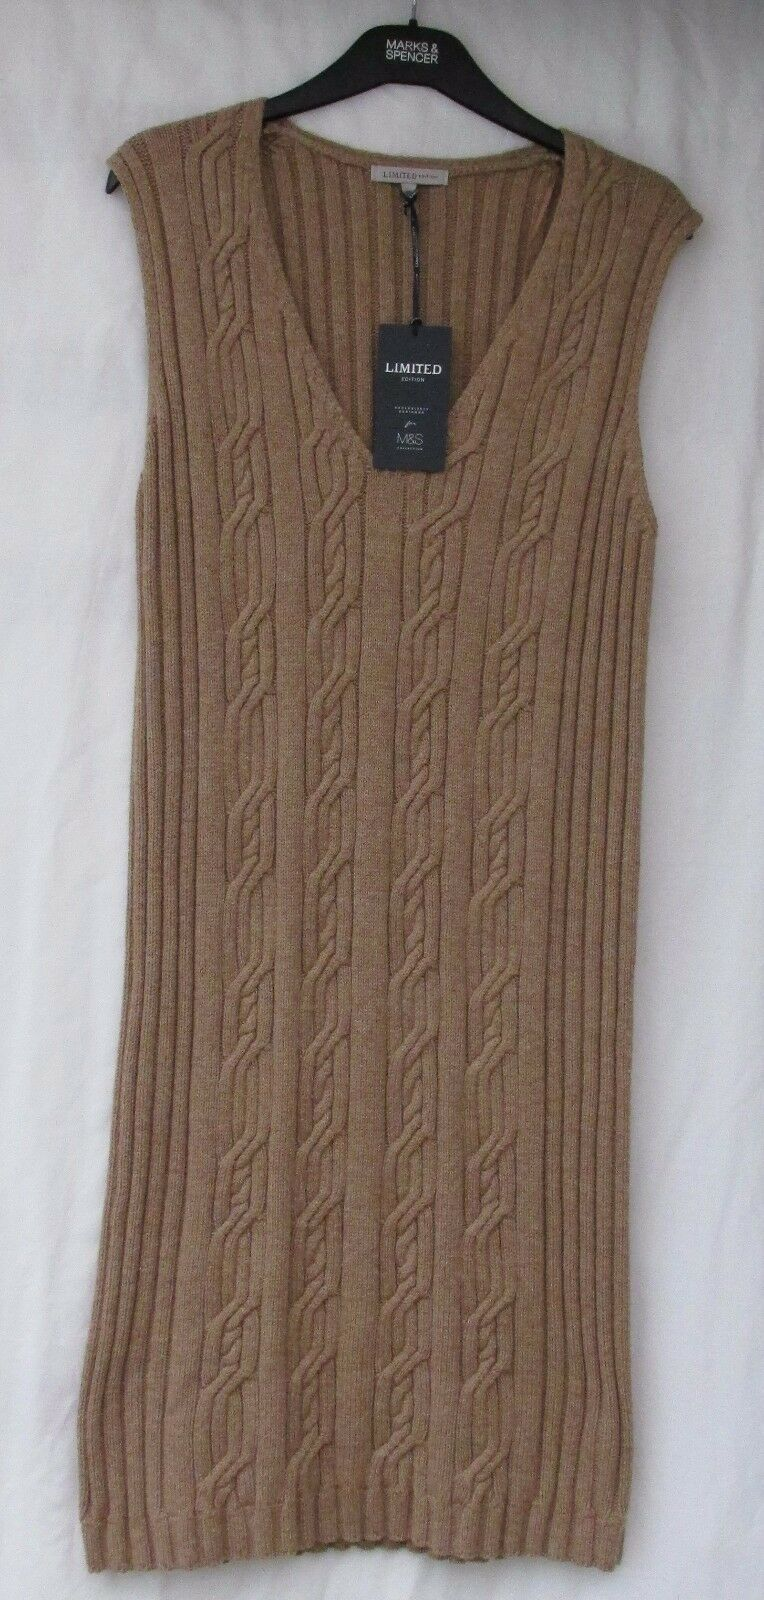 LADIES MARKS AND SPENCER LIMITED CAMEL LONG SLEEVELESS RIBBED JUMPER SIZE 16